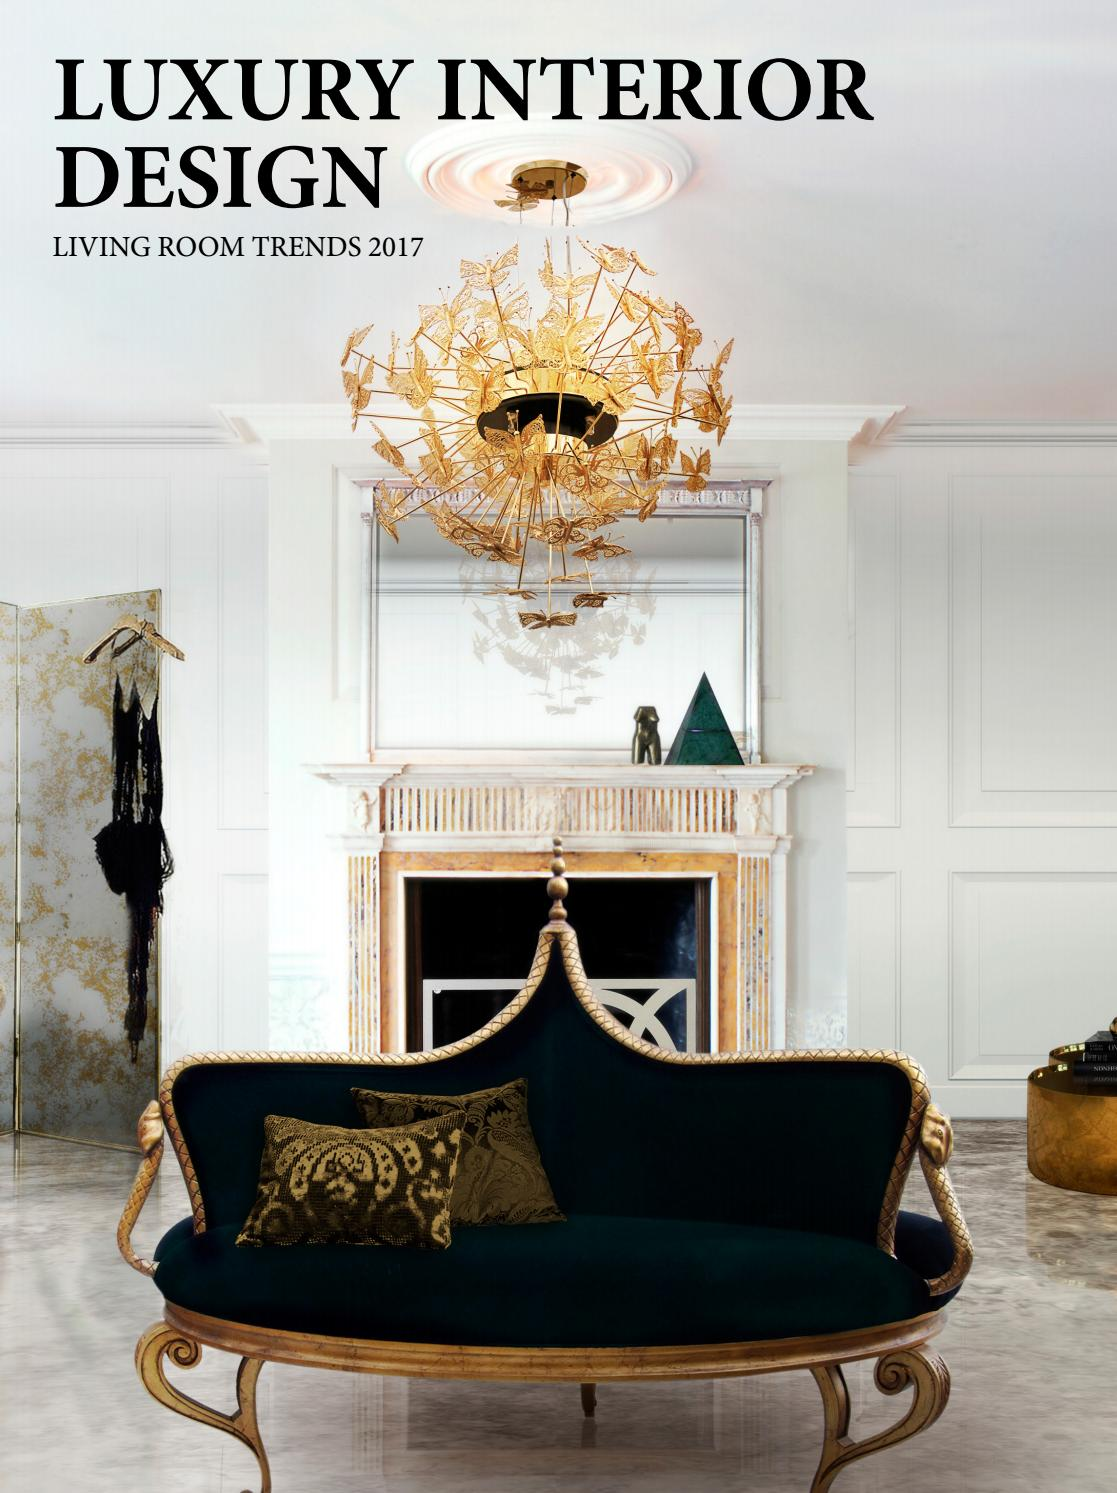 Luxury Interior Design Living Room Trends 2017 By Home Living Magazines Issuu